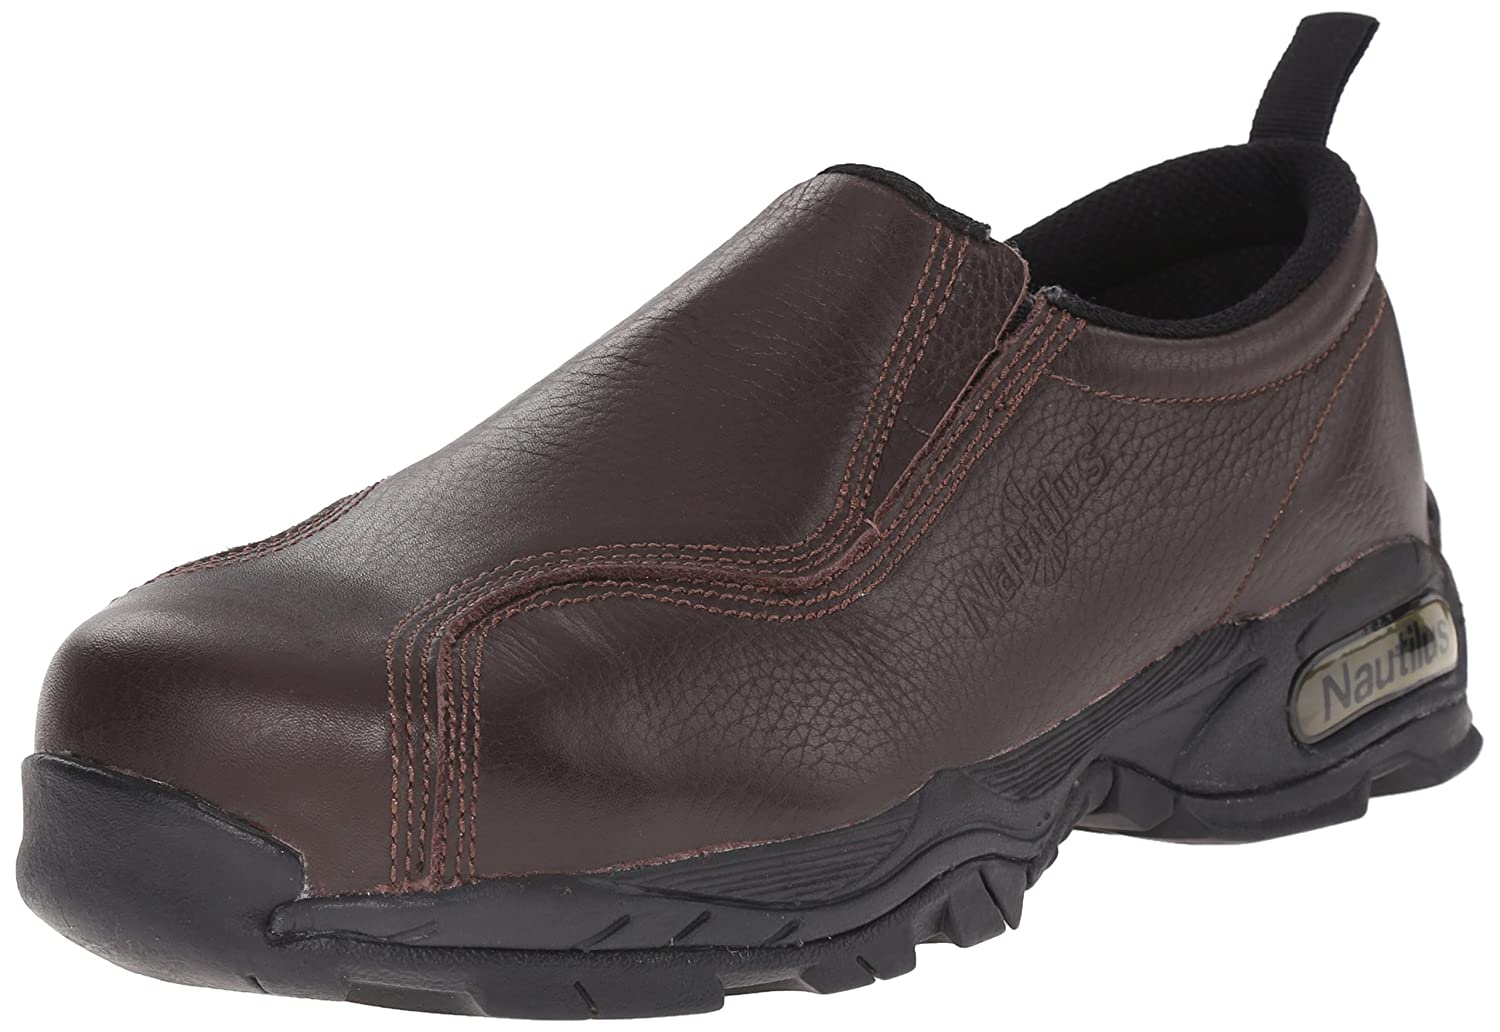 Nautilus Safety Footwear メンズ B000IX6SO6 7.5 W|ブラウン ブラウン 7.5 W